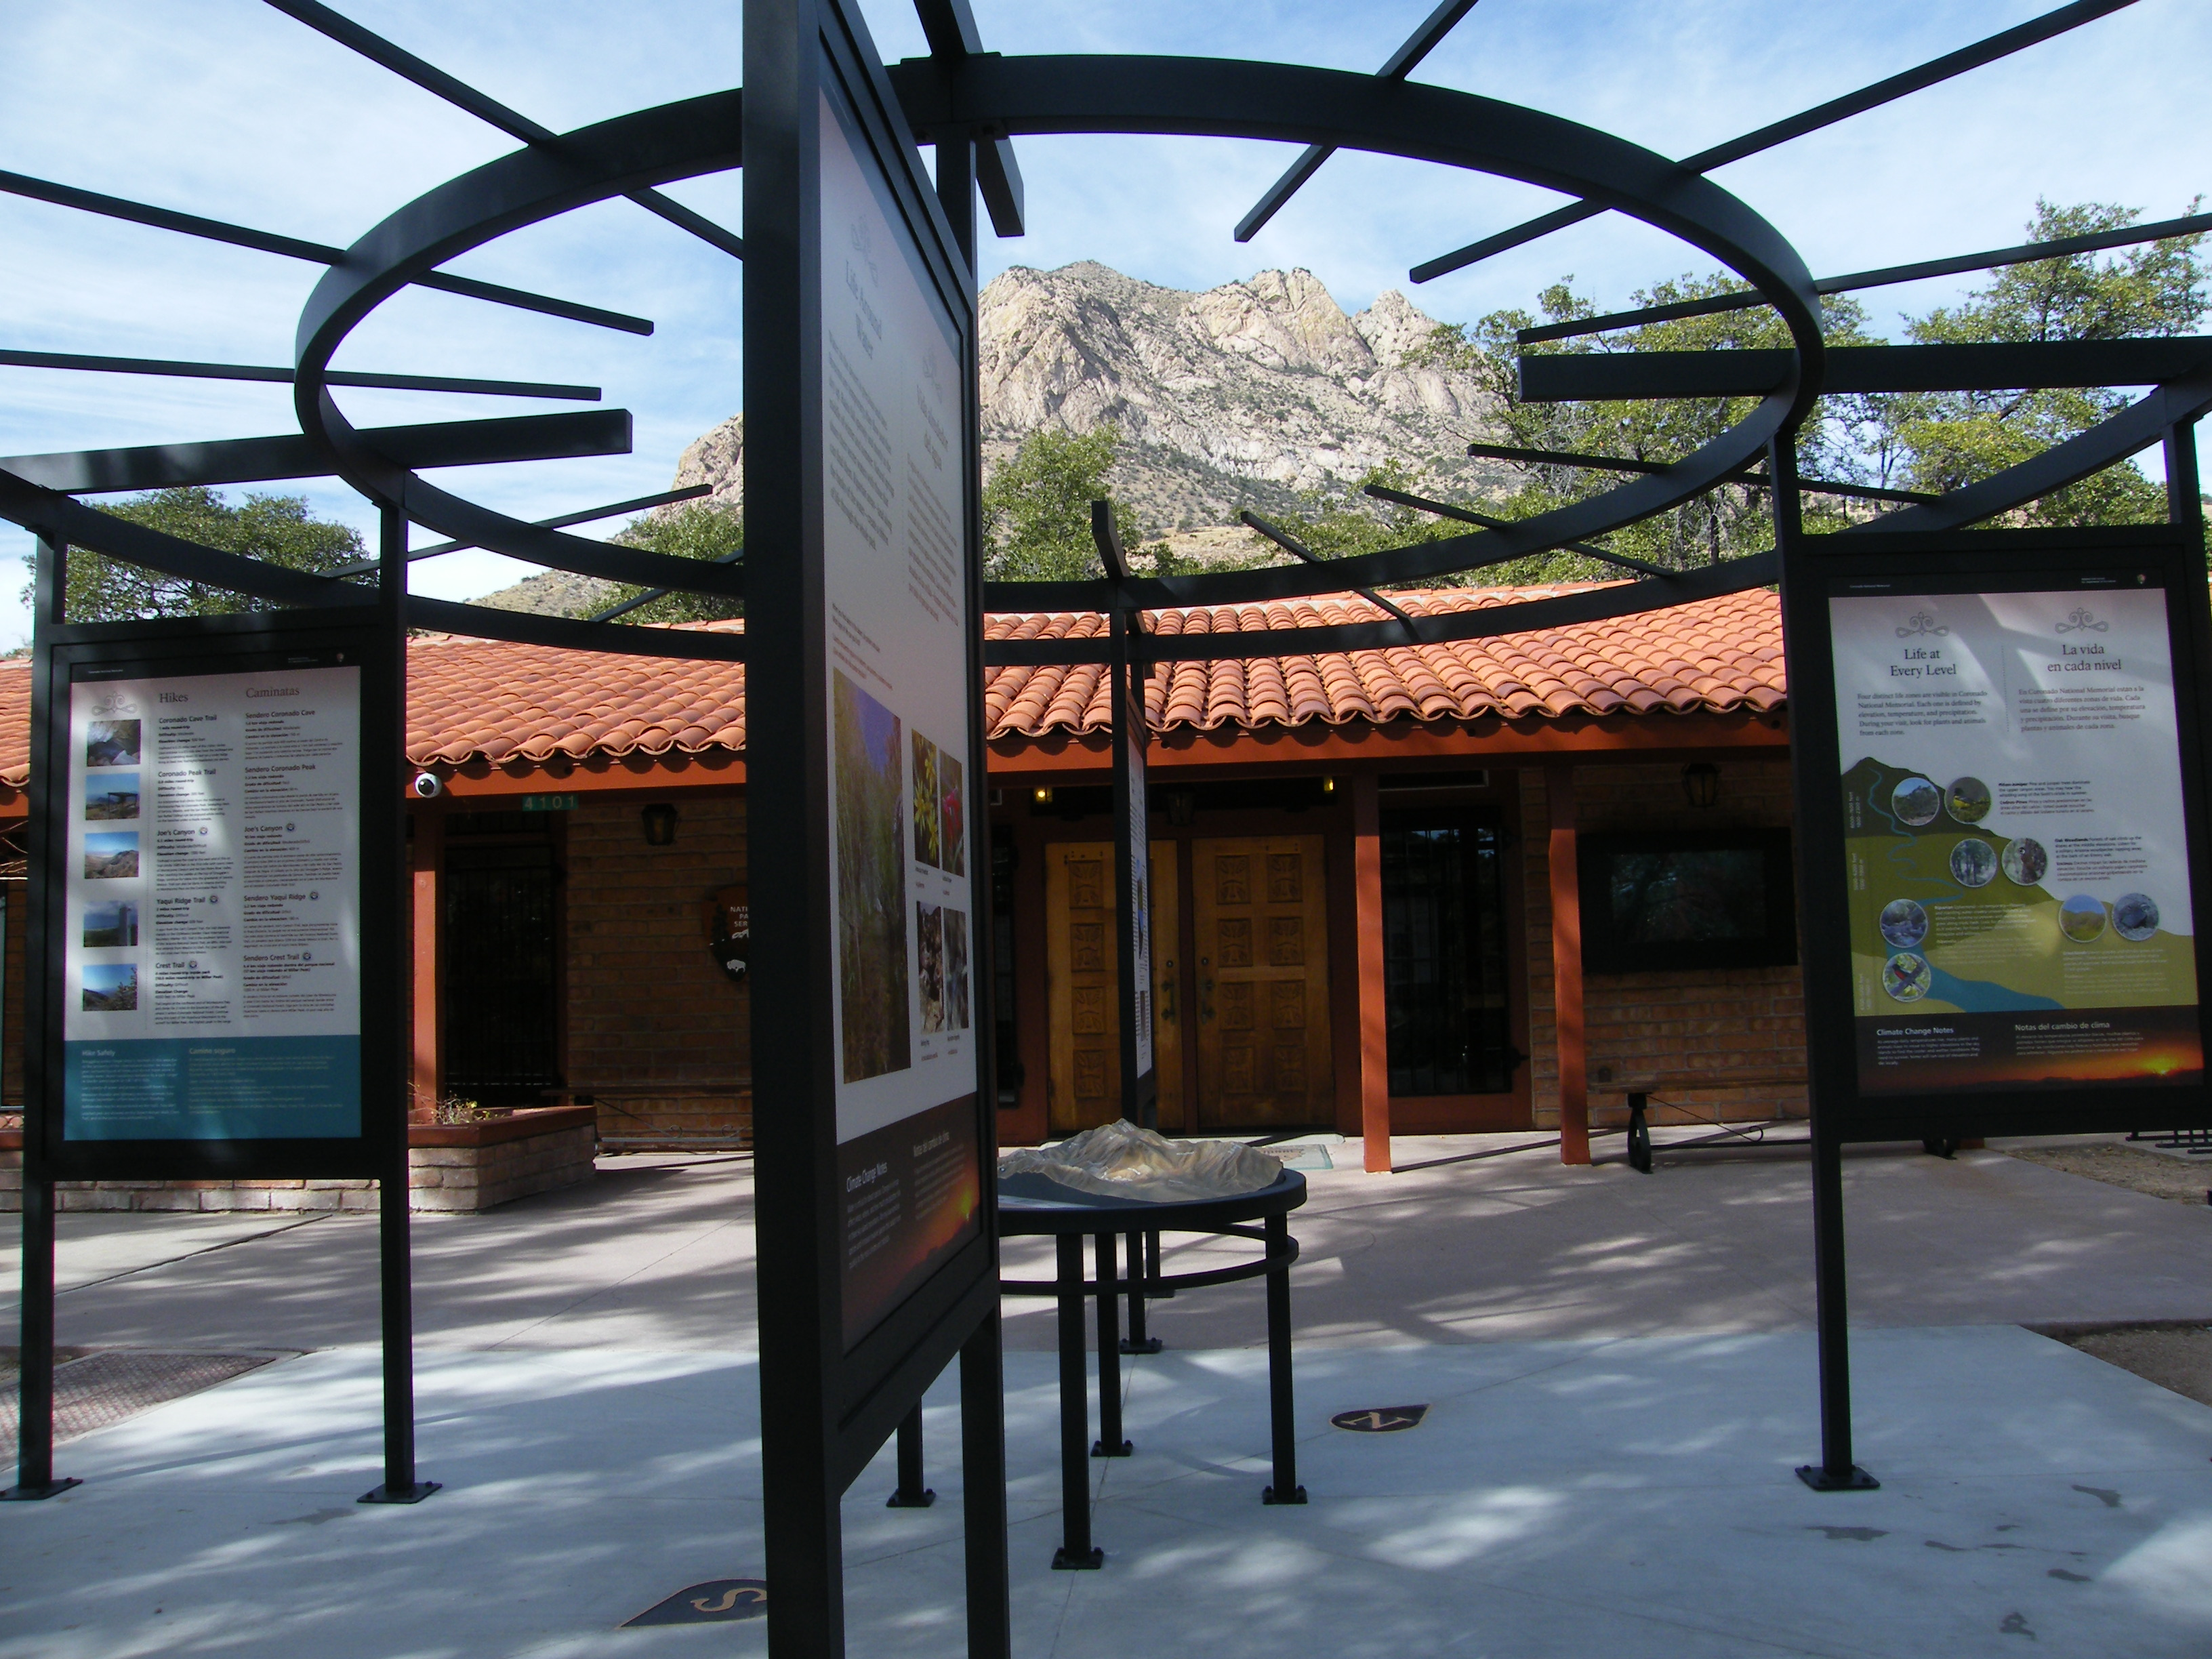 Exhibit panels outside of the visitor center